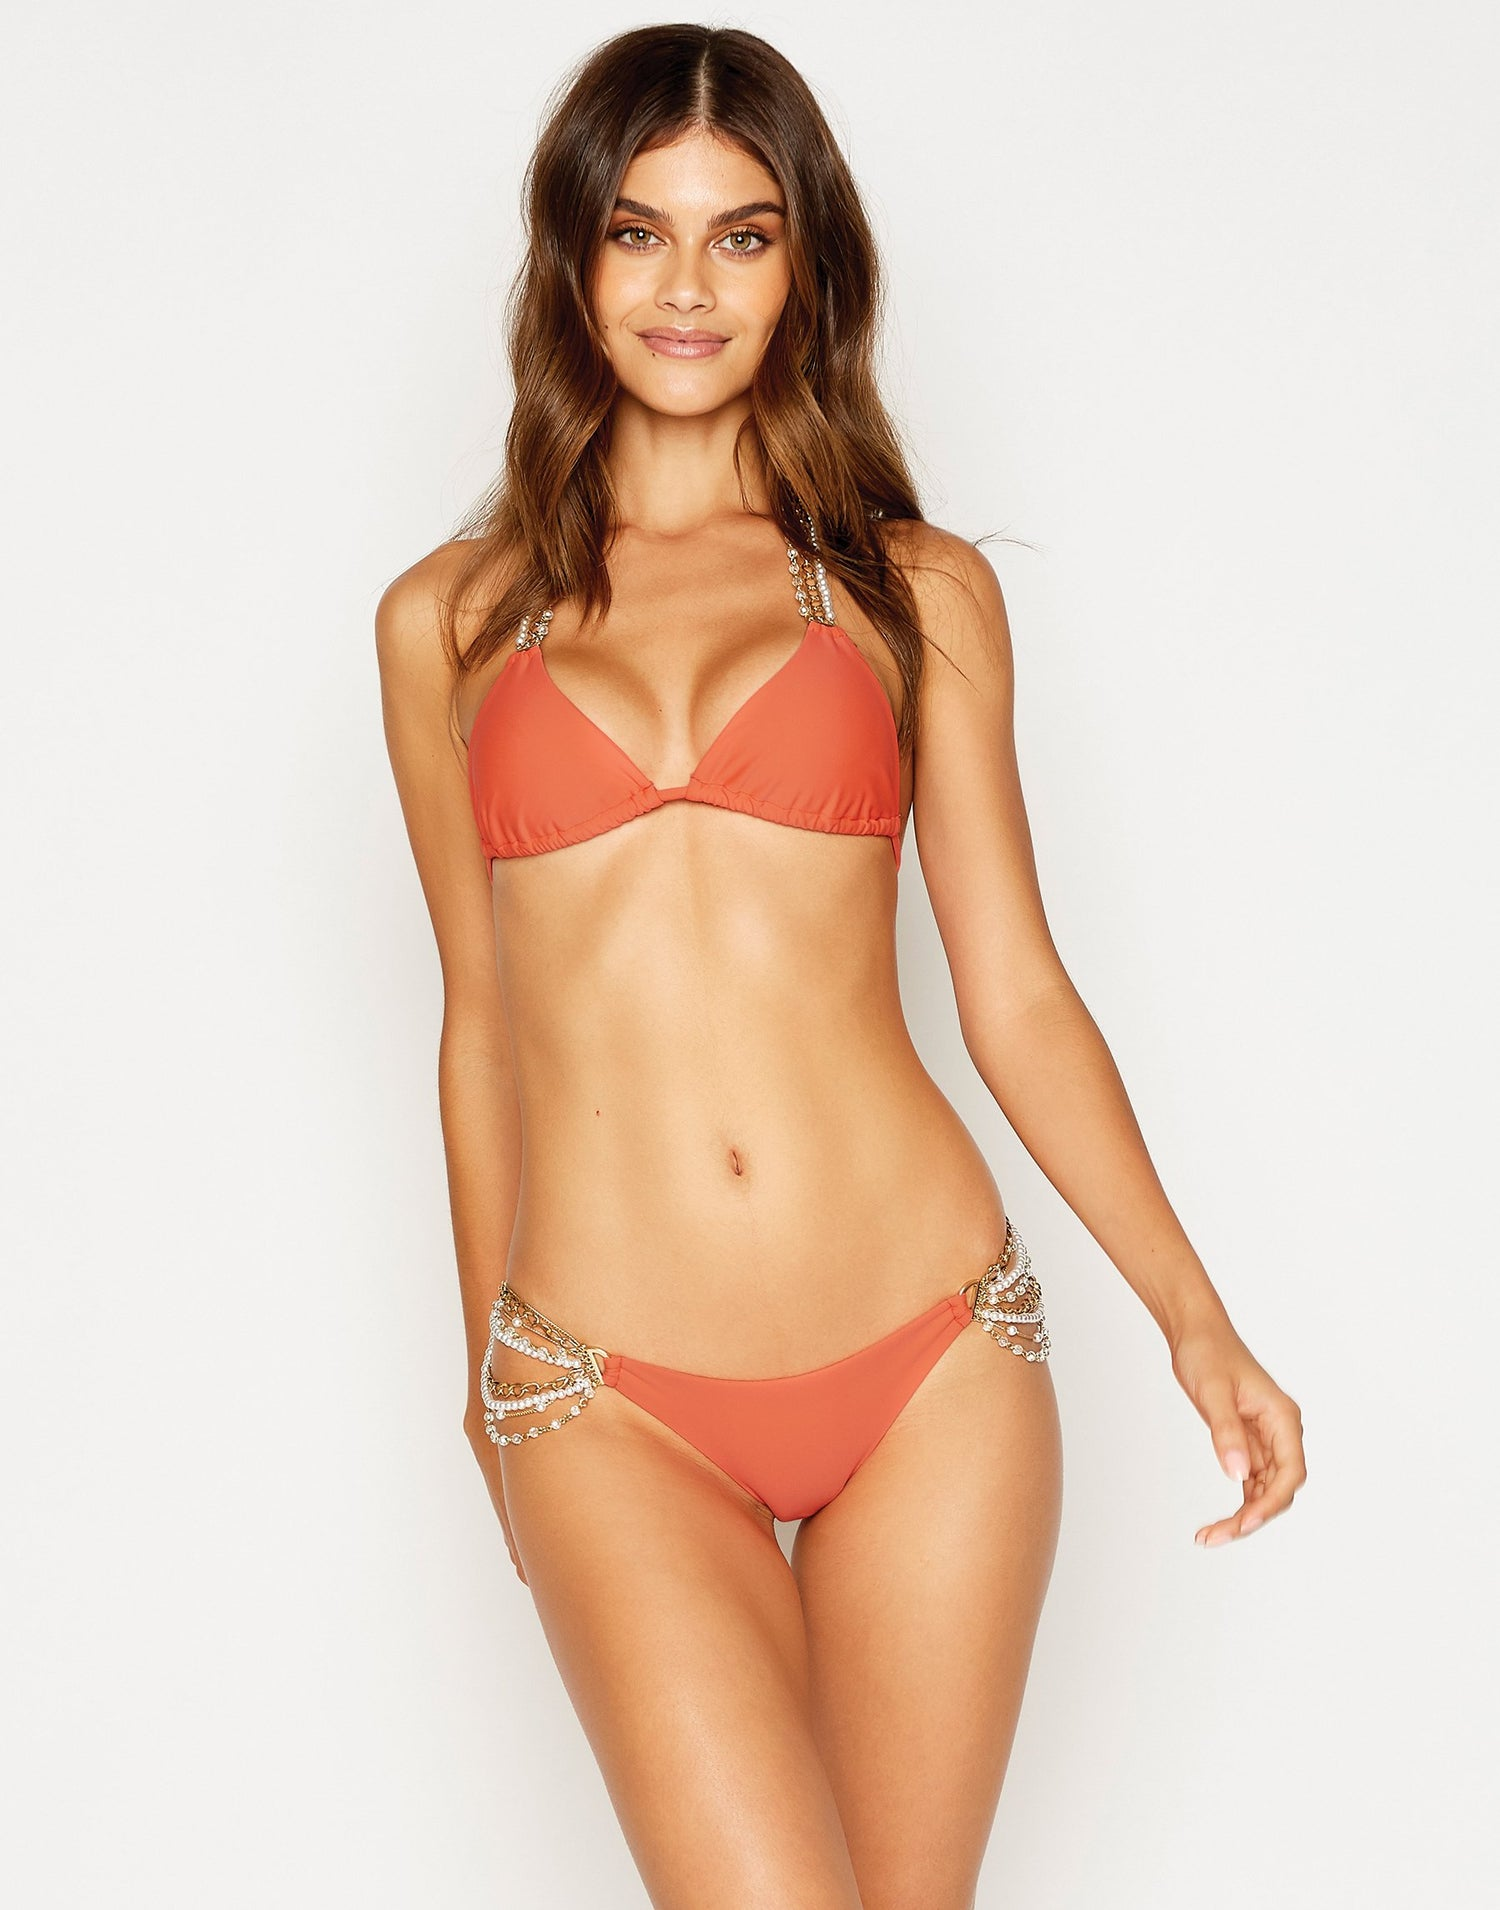 Pretty in Pearls Triangle Bikini Top in Poppy Red with Pearl Hardware - front view